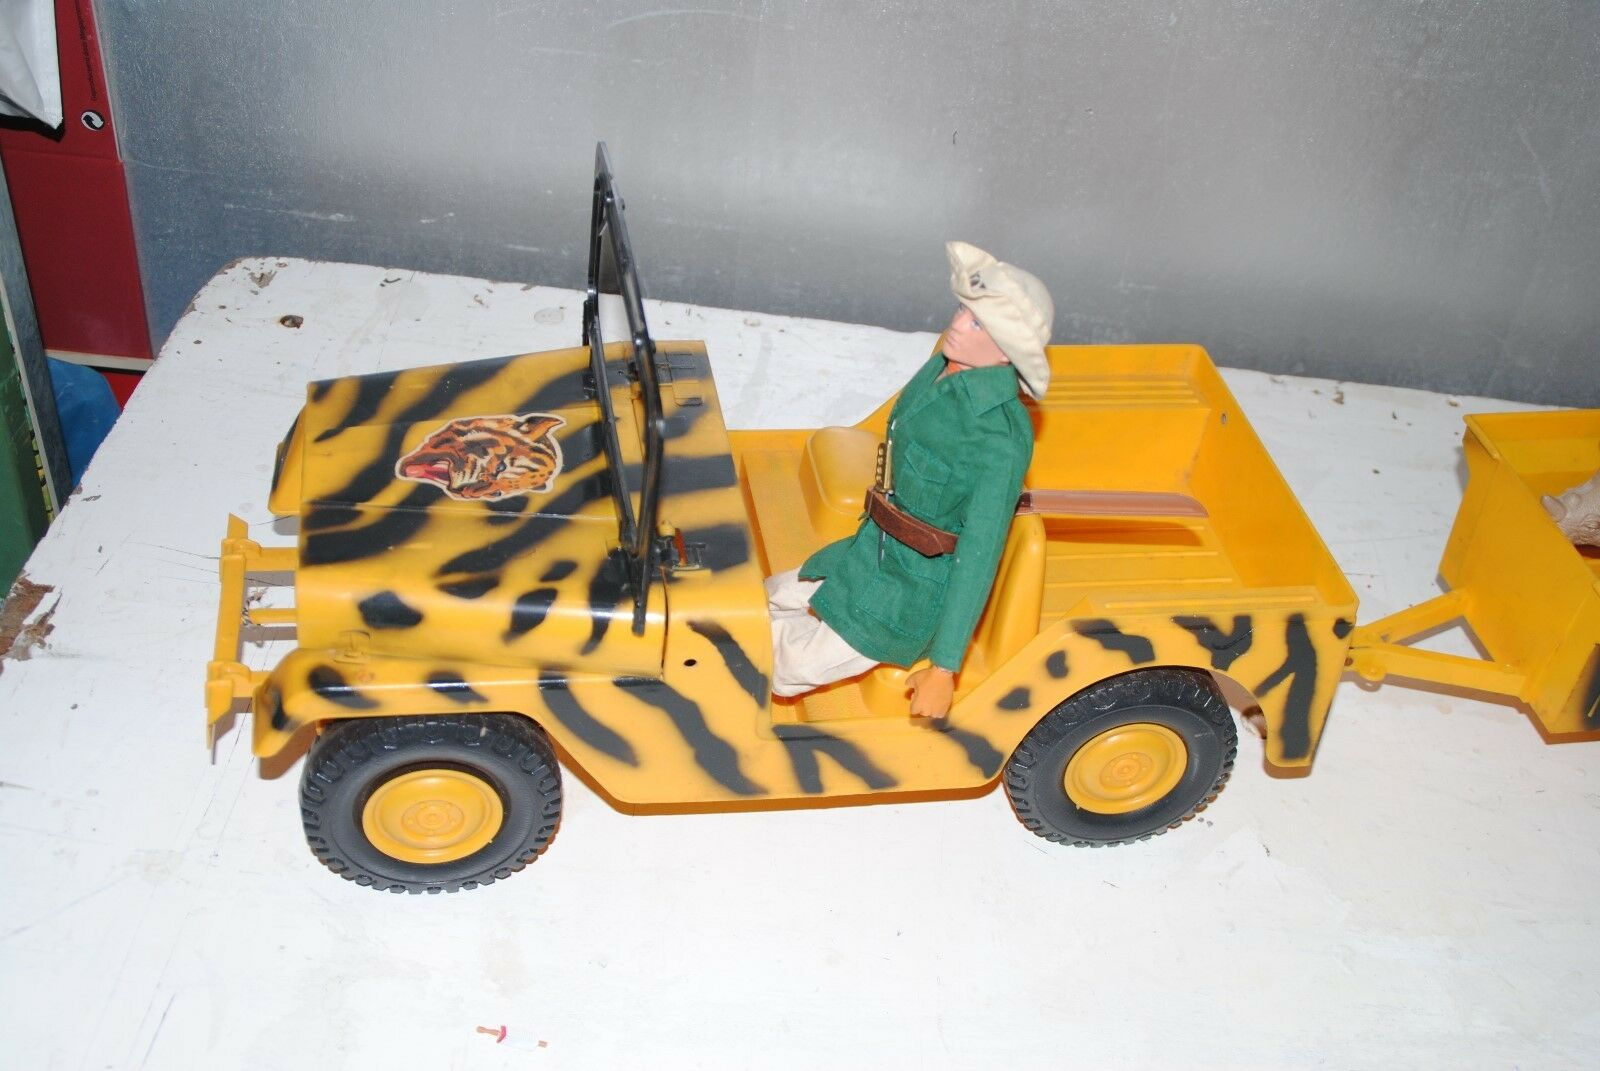 GI JOE ACTION MAN  MOLTO  VINTAGE    JUNGLE  JEEP + TRAILER   NICE PLAYSET